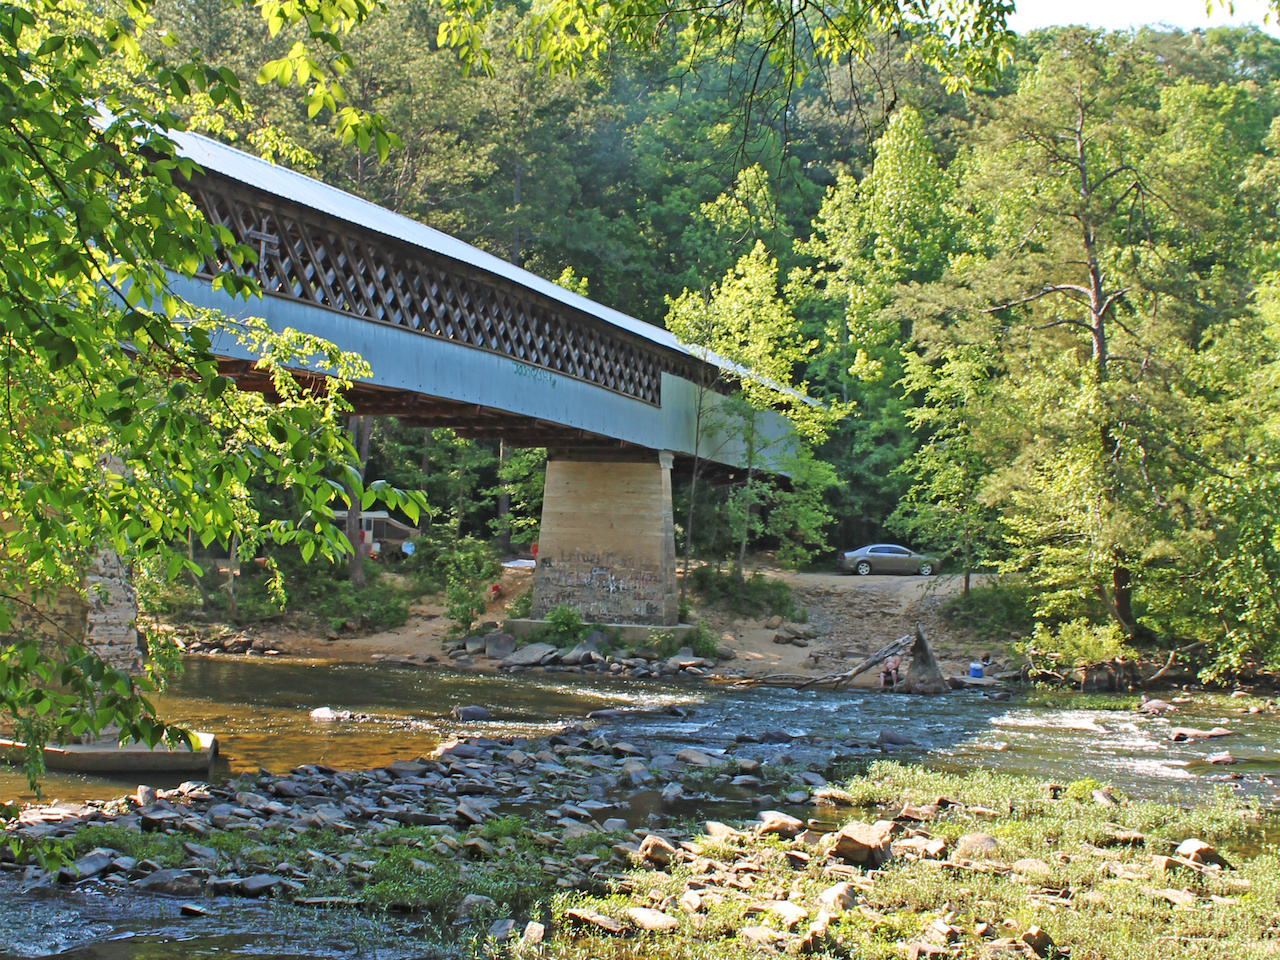 Sometimes referred to as the Swann-Joy Bridge, this covered bridge was constructed in 1933 to connect the town of Cleveland to the town of Joy.